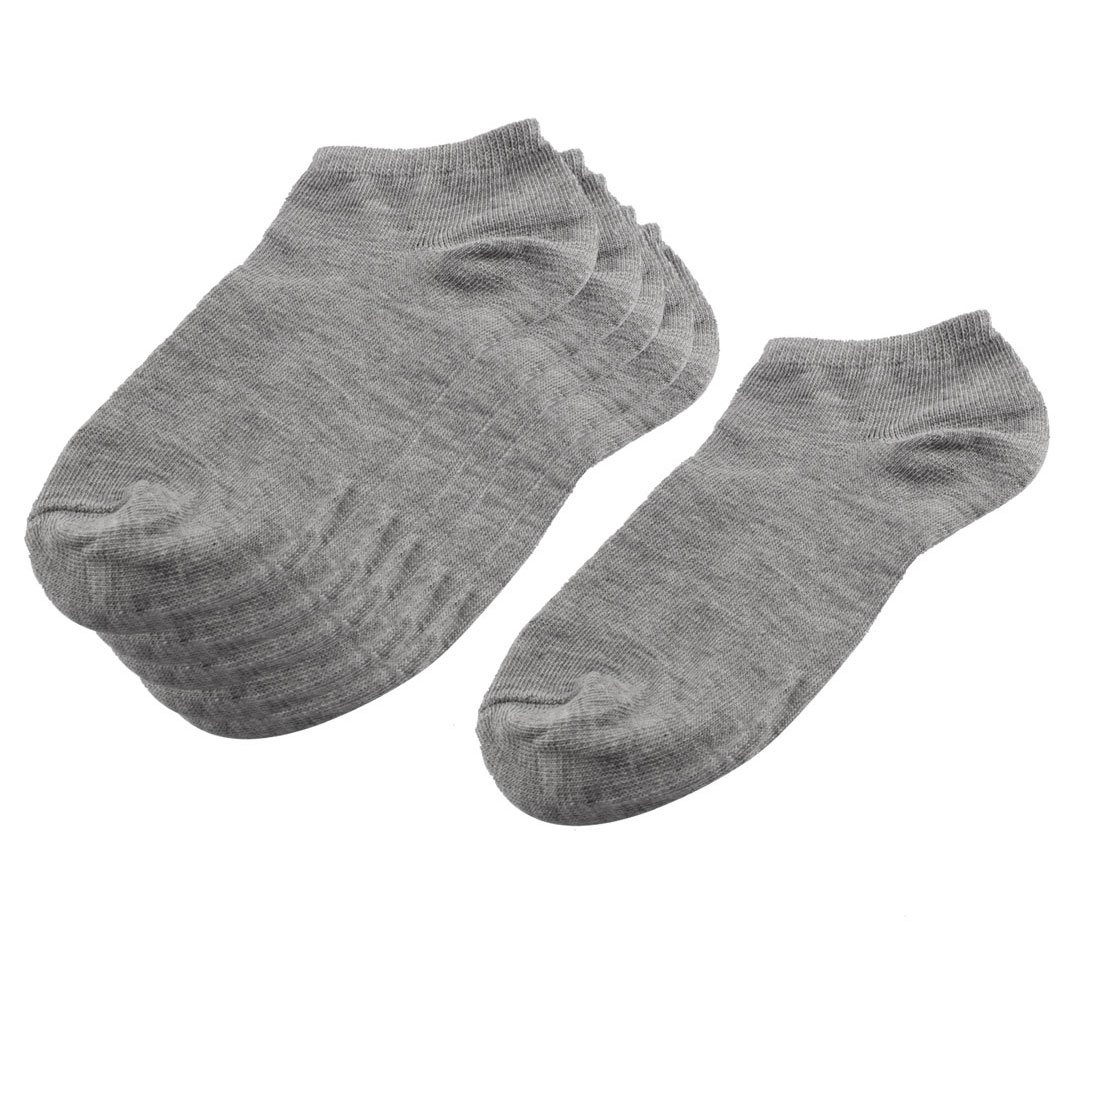 3 Pairs Gray Elastic Cotton Blends Cuff Short Low Cut Ankle Socks for Lady